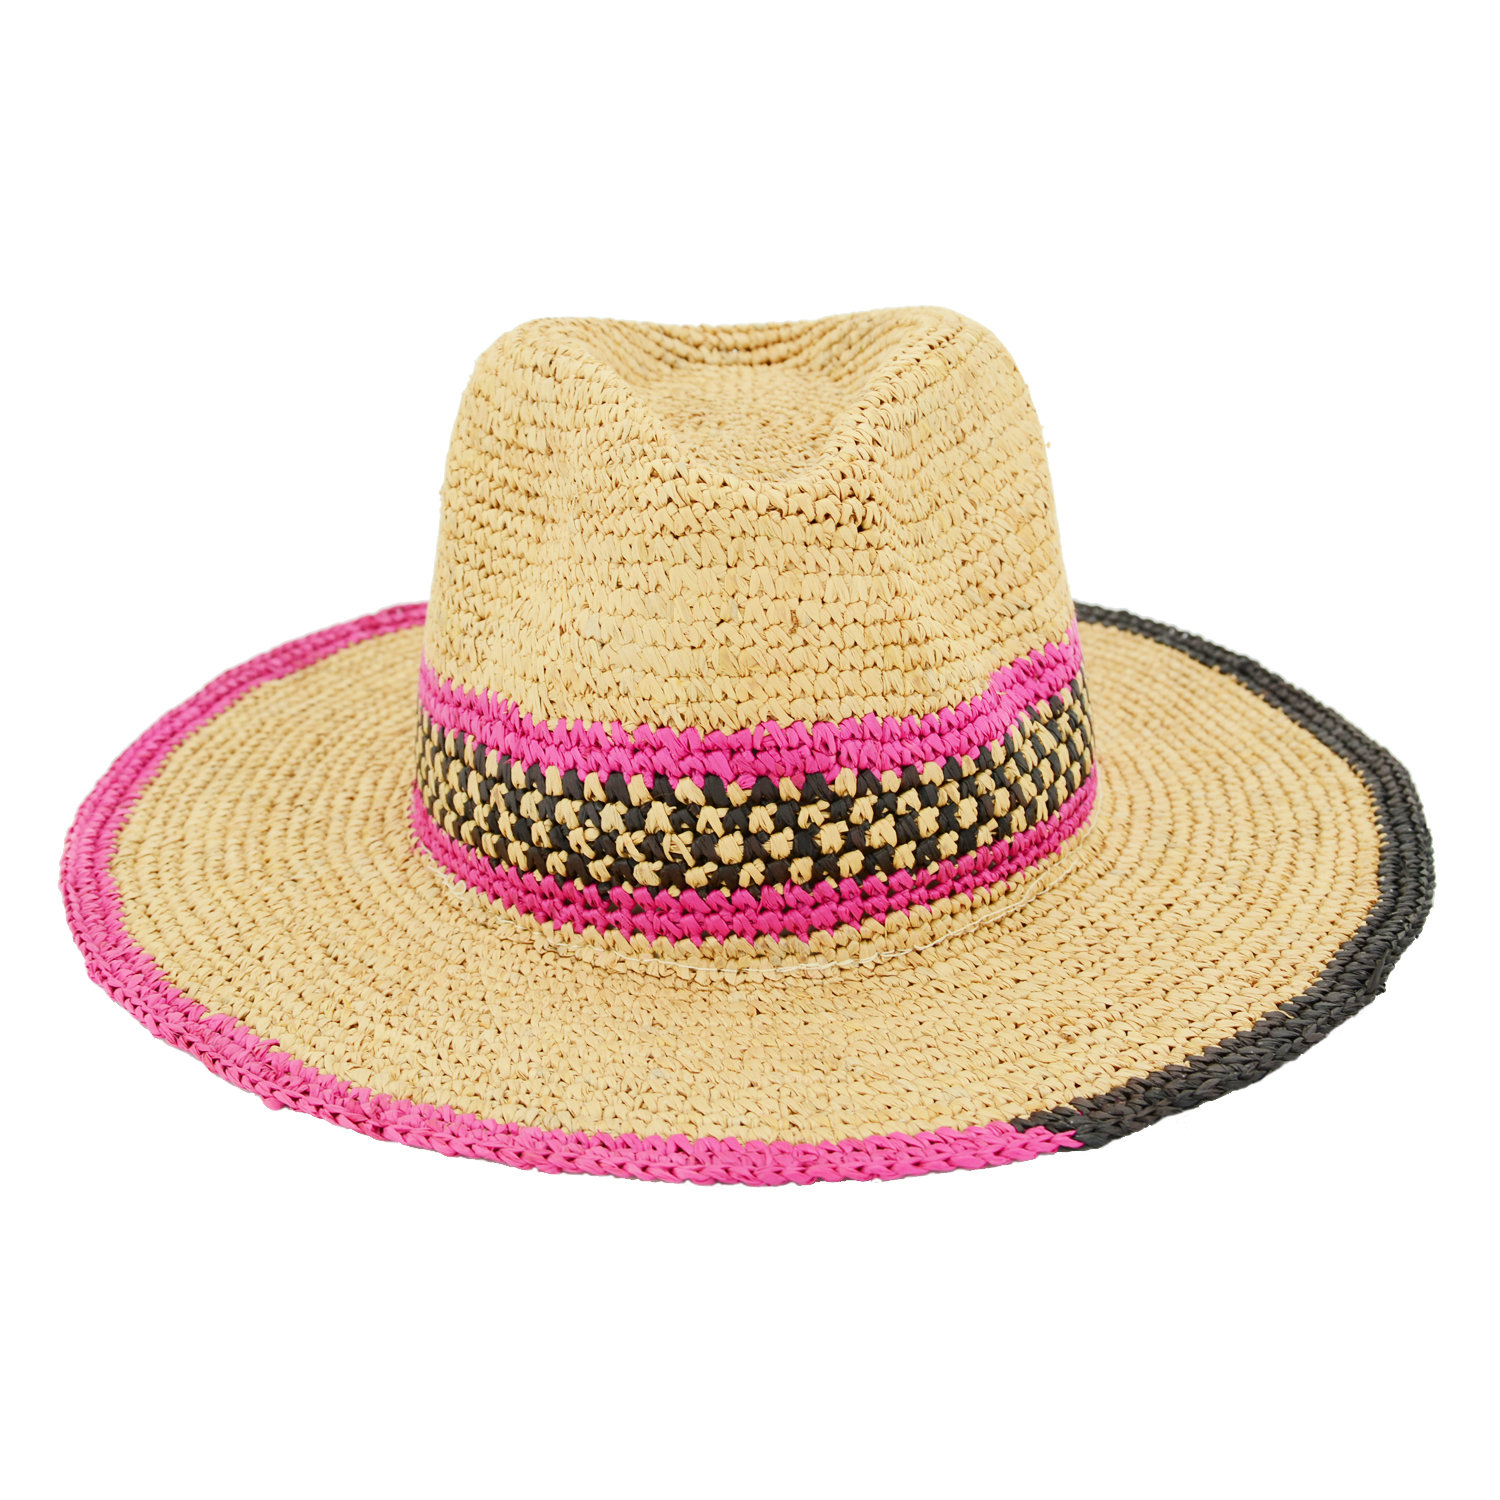 Wide Brim Raffia Panama Hat Striped Design